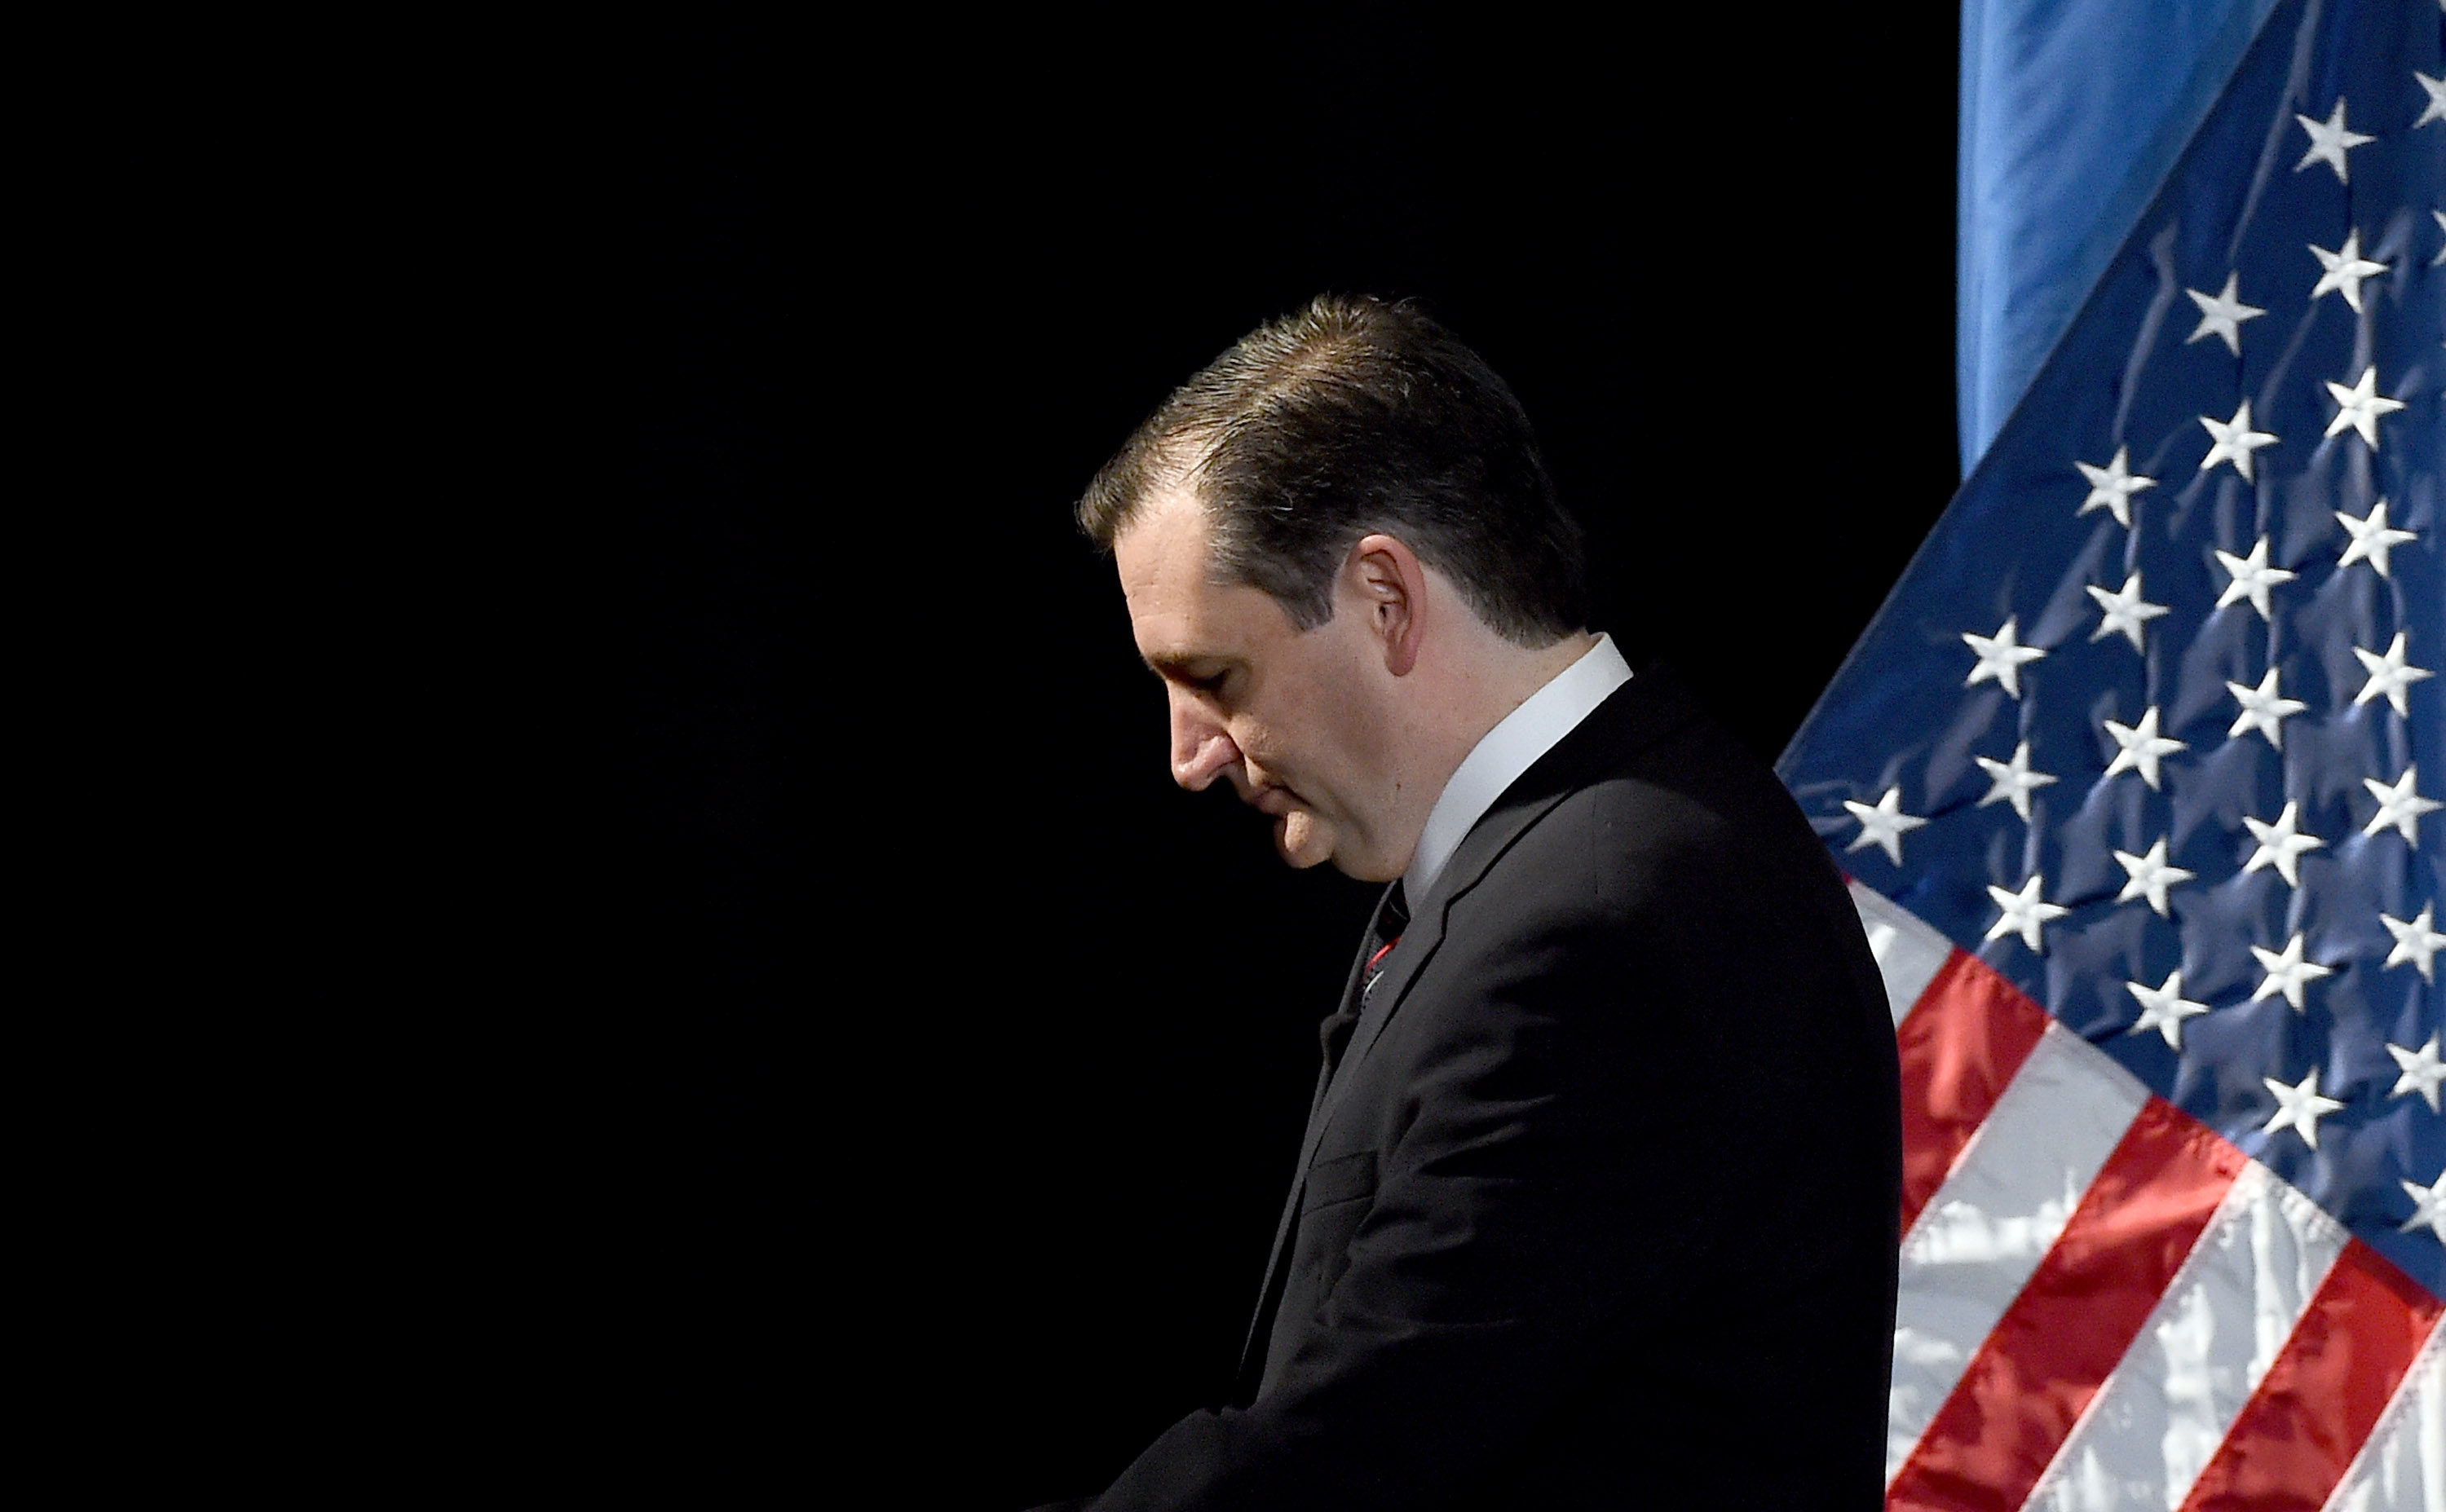 Republican presidential candidate U.S. Sen. Ted Cruz  leaves the stage after speaking during the Republican Jewish Coalition spring leadership meeting at The Venetian Las Vegas on April 25, 2015 in Las Vegas, Nevada.